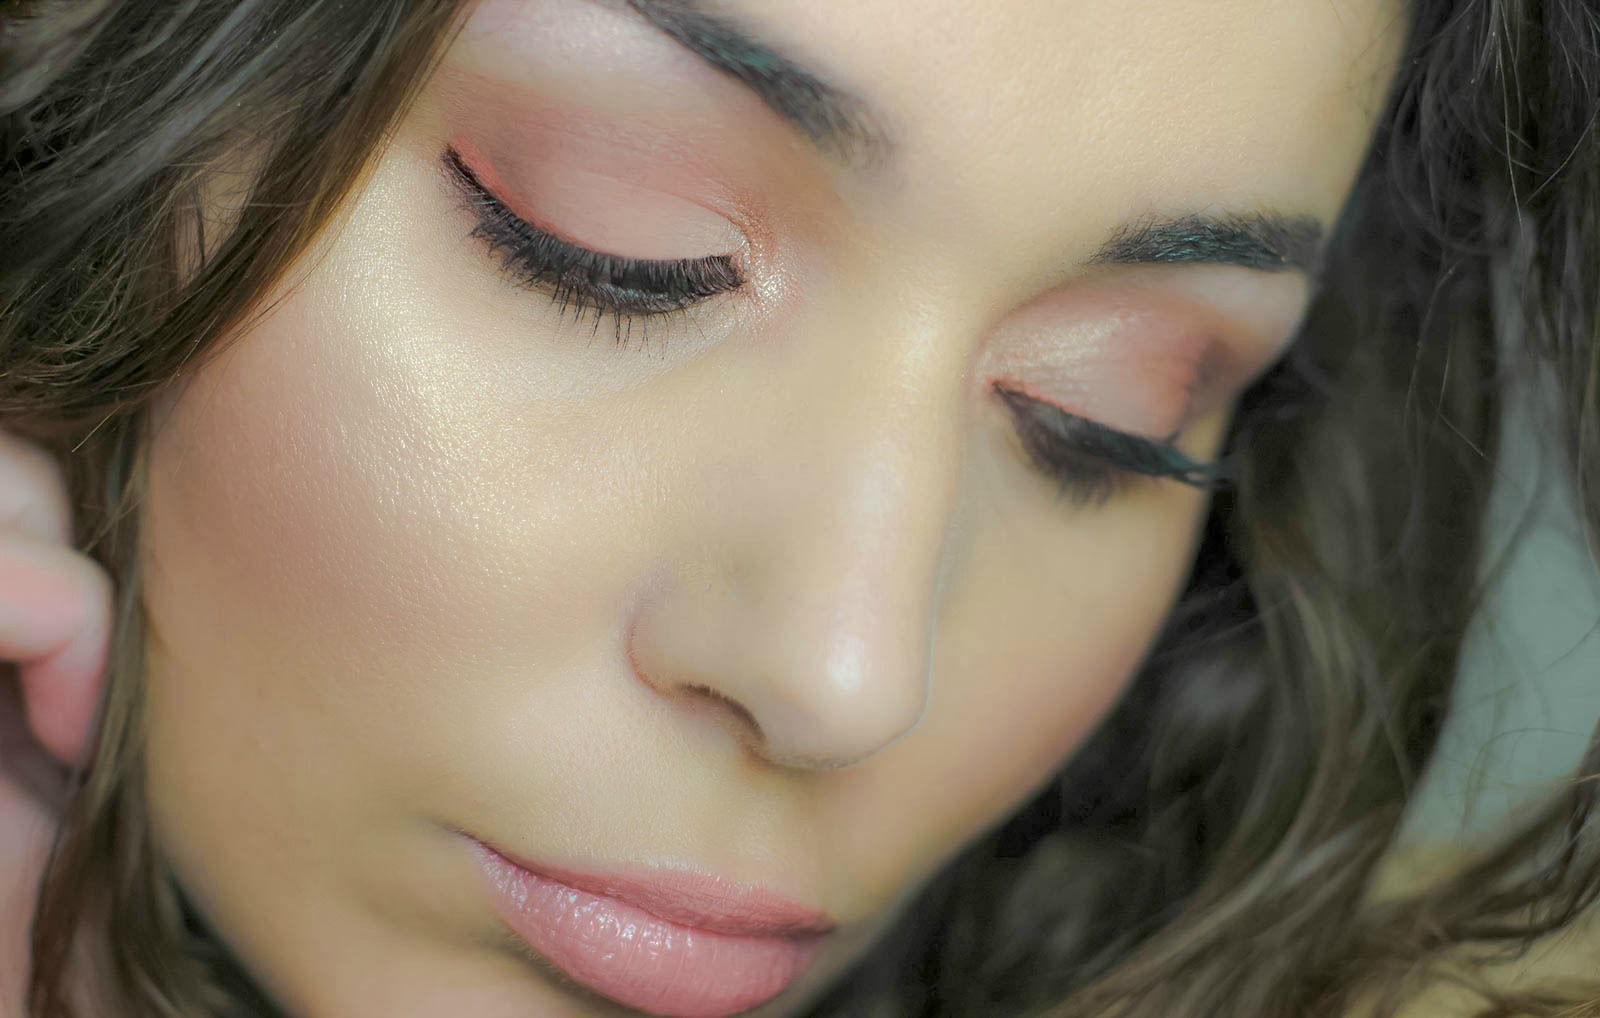 SWEET_PEACH_TOOFACED_makeup-3